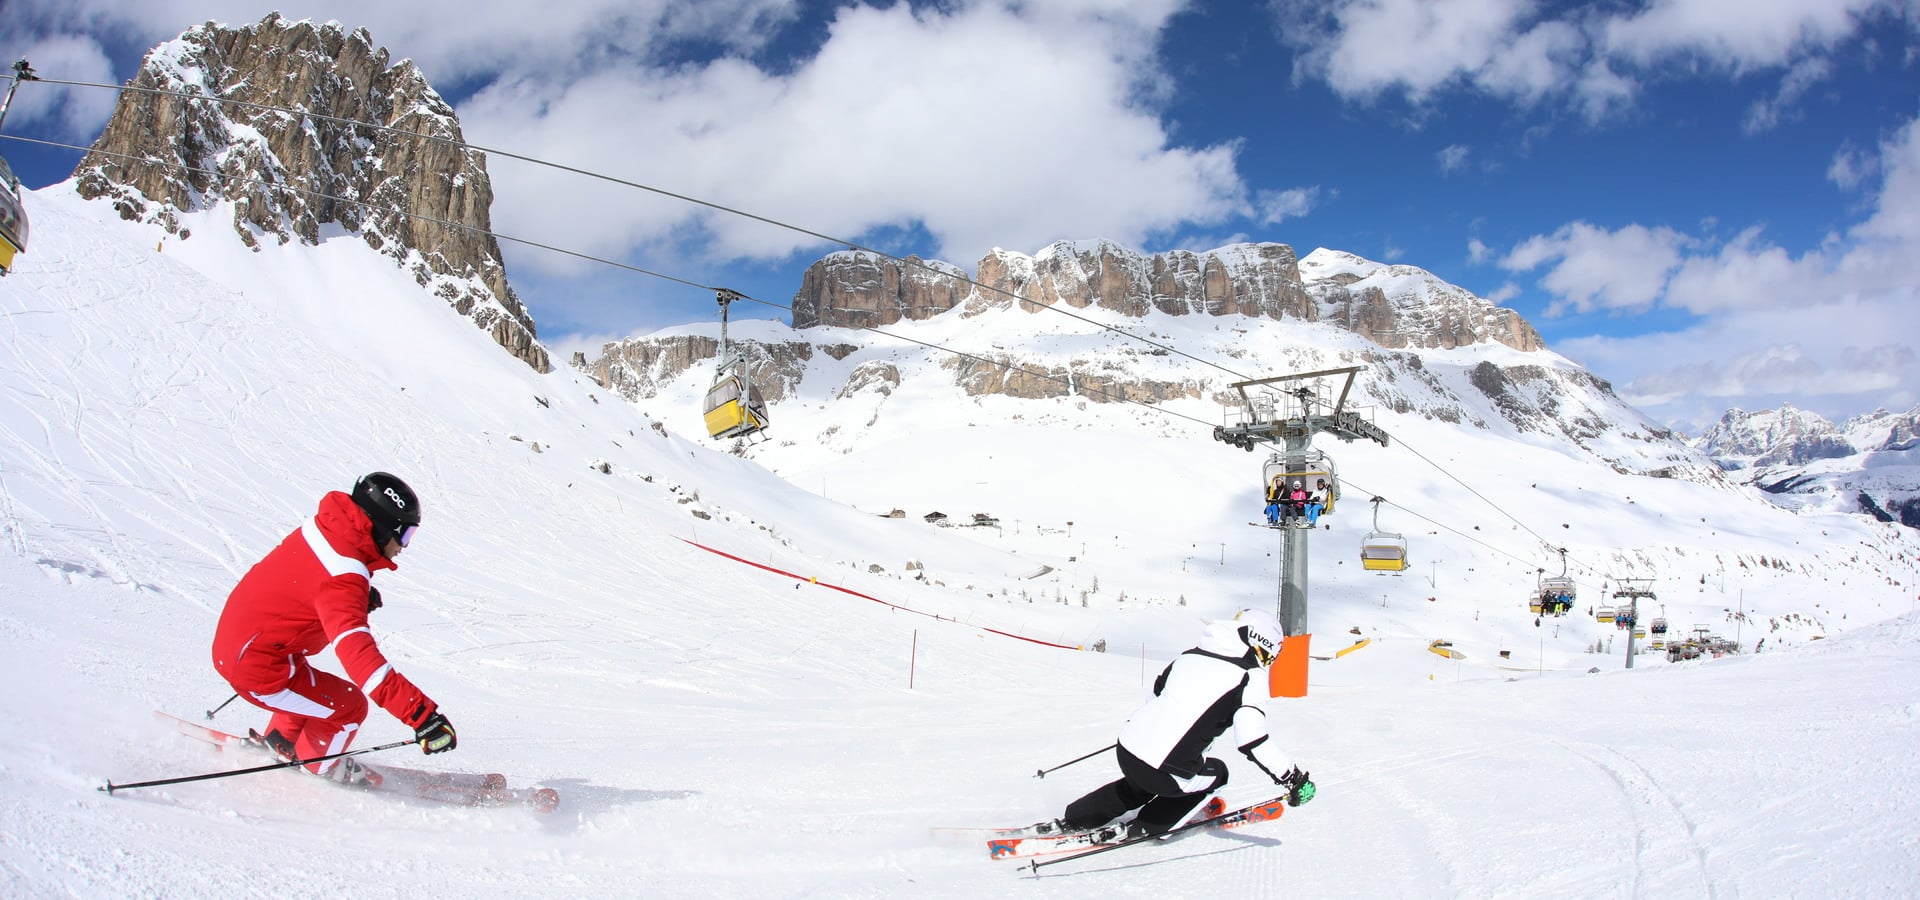 Skipass Prices Arabba- Marmoalda & Dolomiti SuperSki